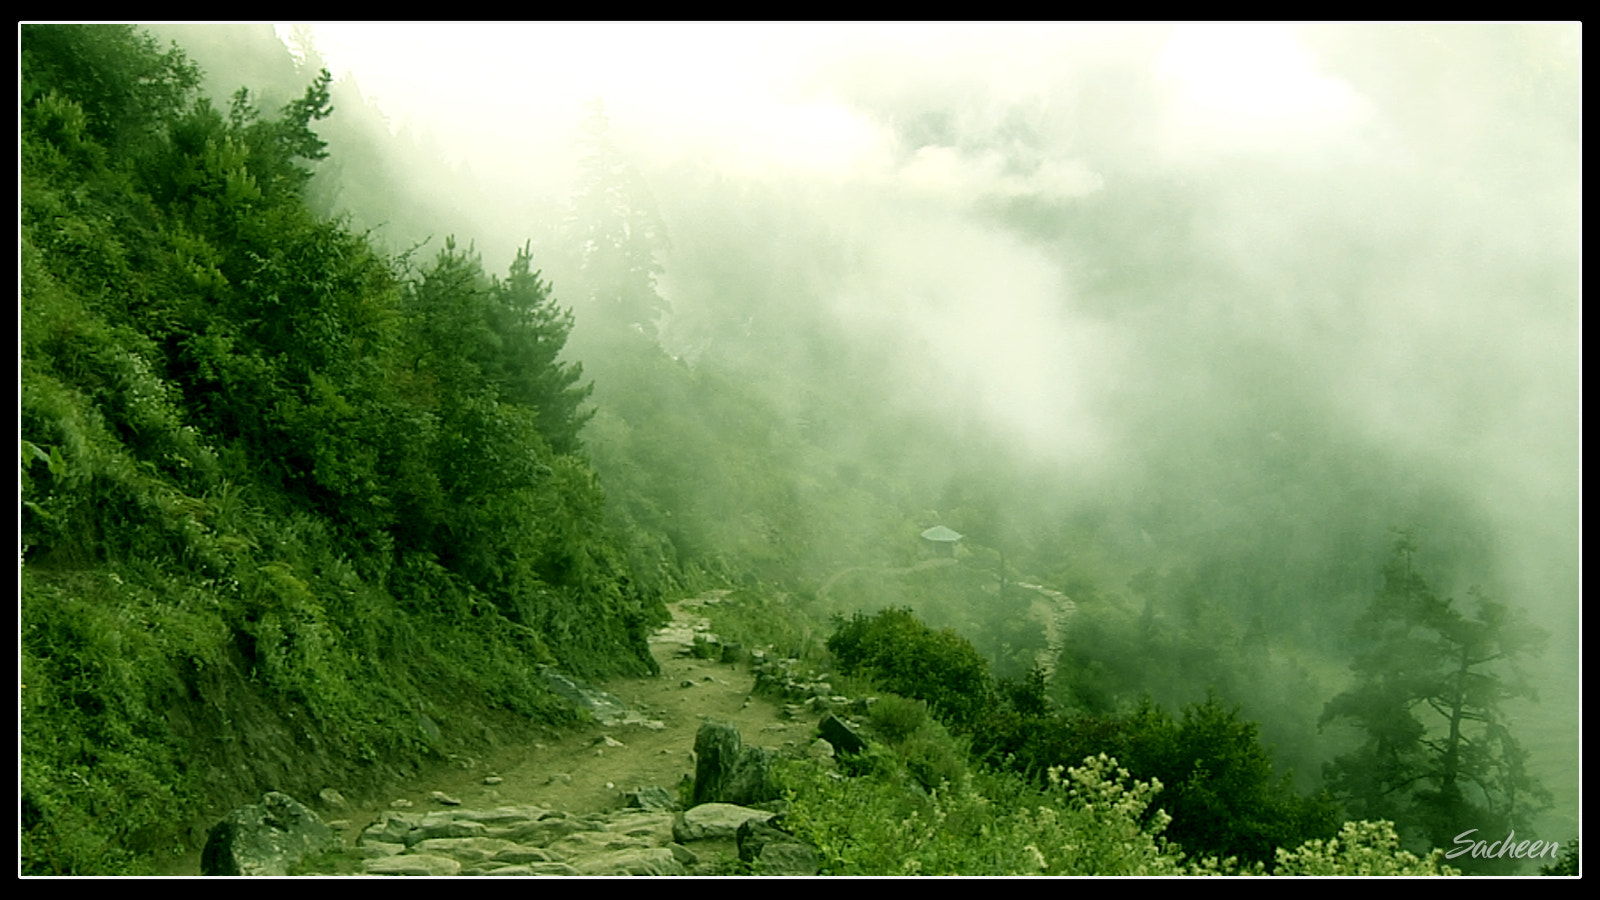 Photograph Forest way by Sacheen Vaidya on 500px